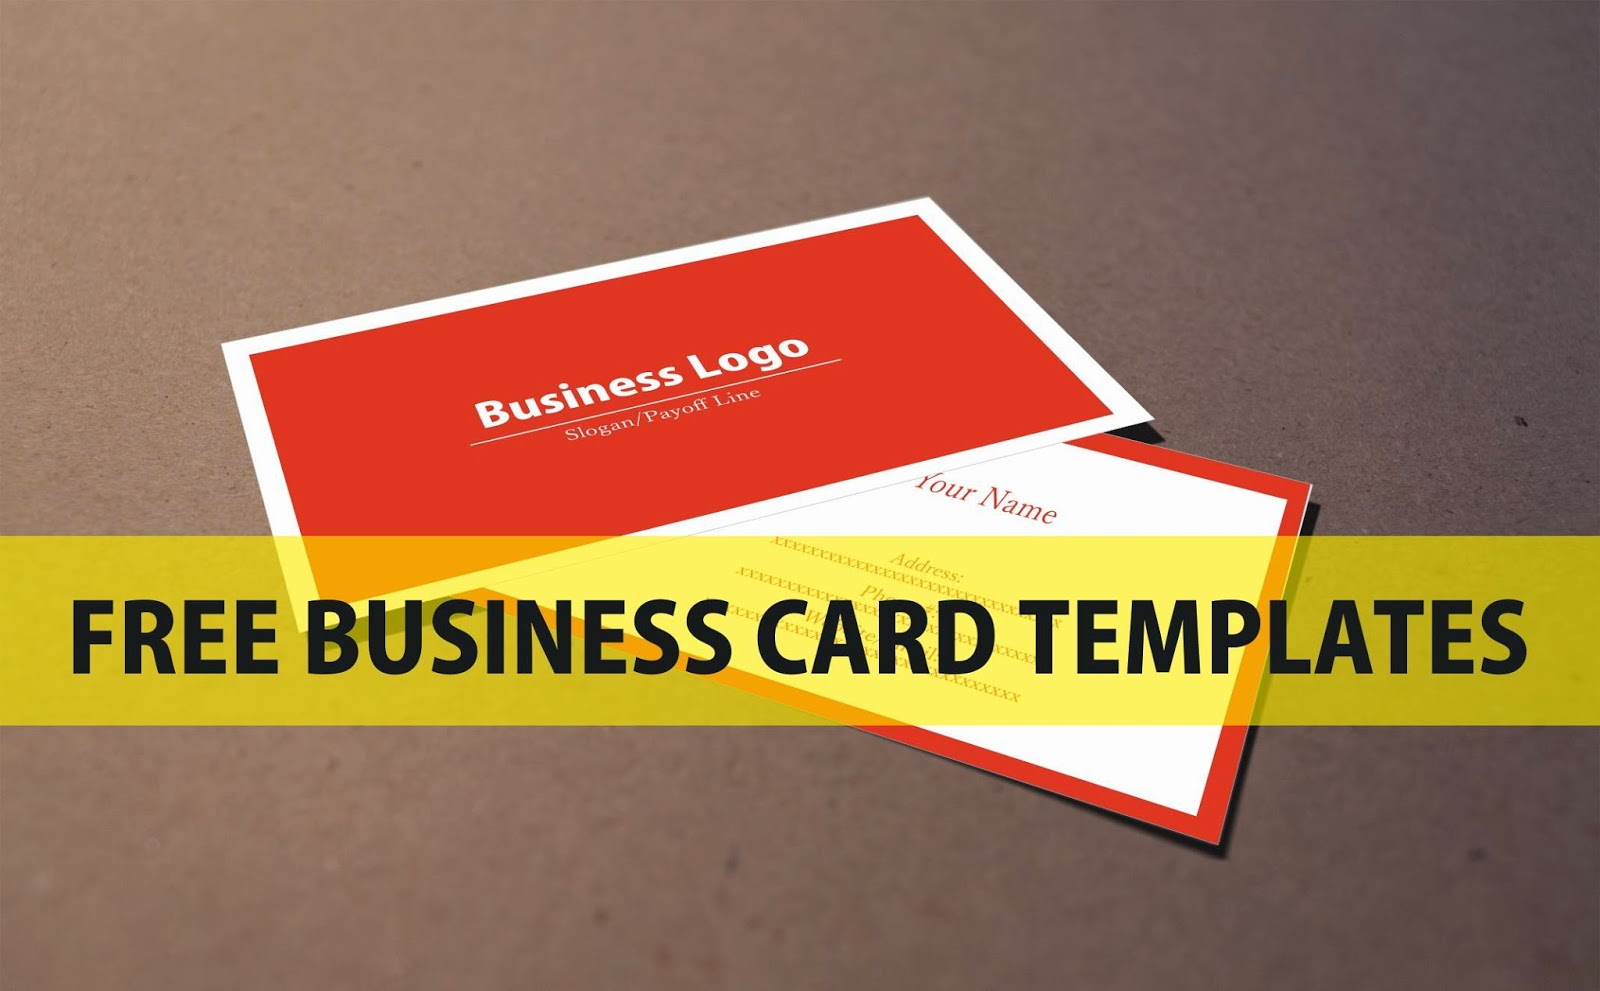 Free Business Card Template - Calling card template free download